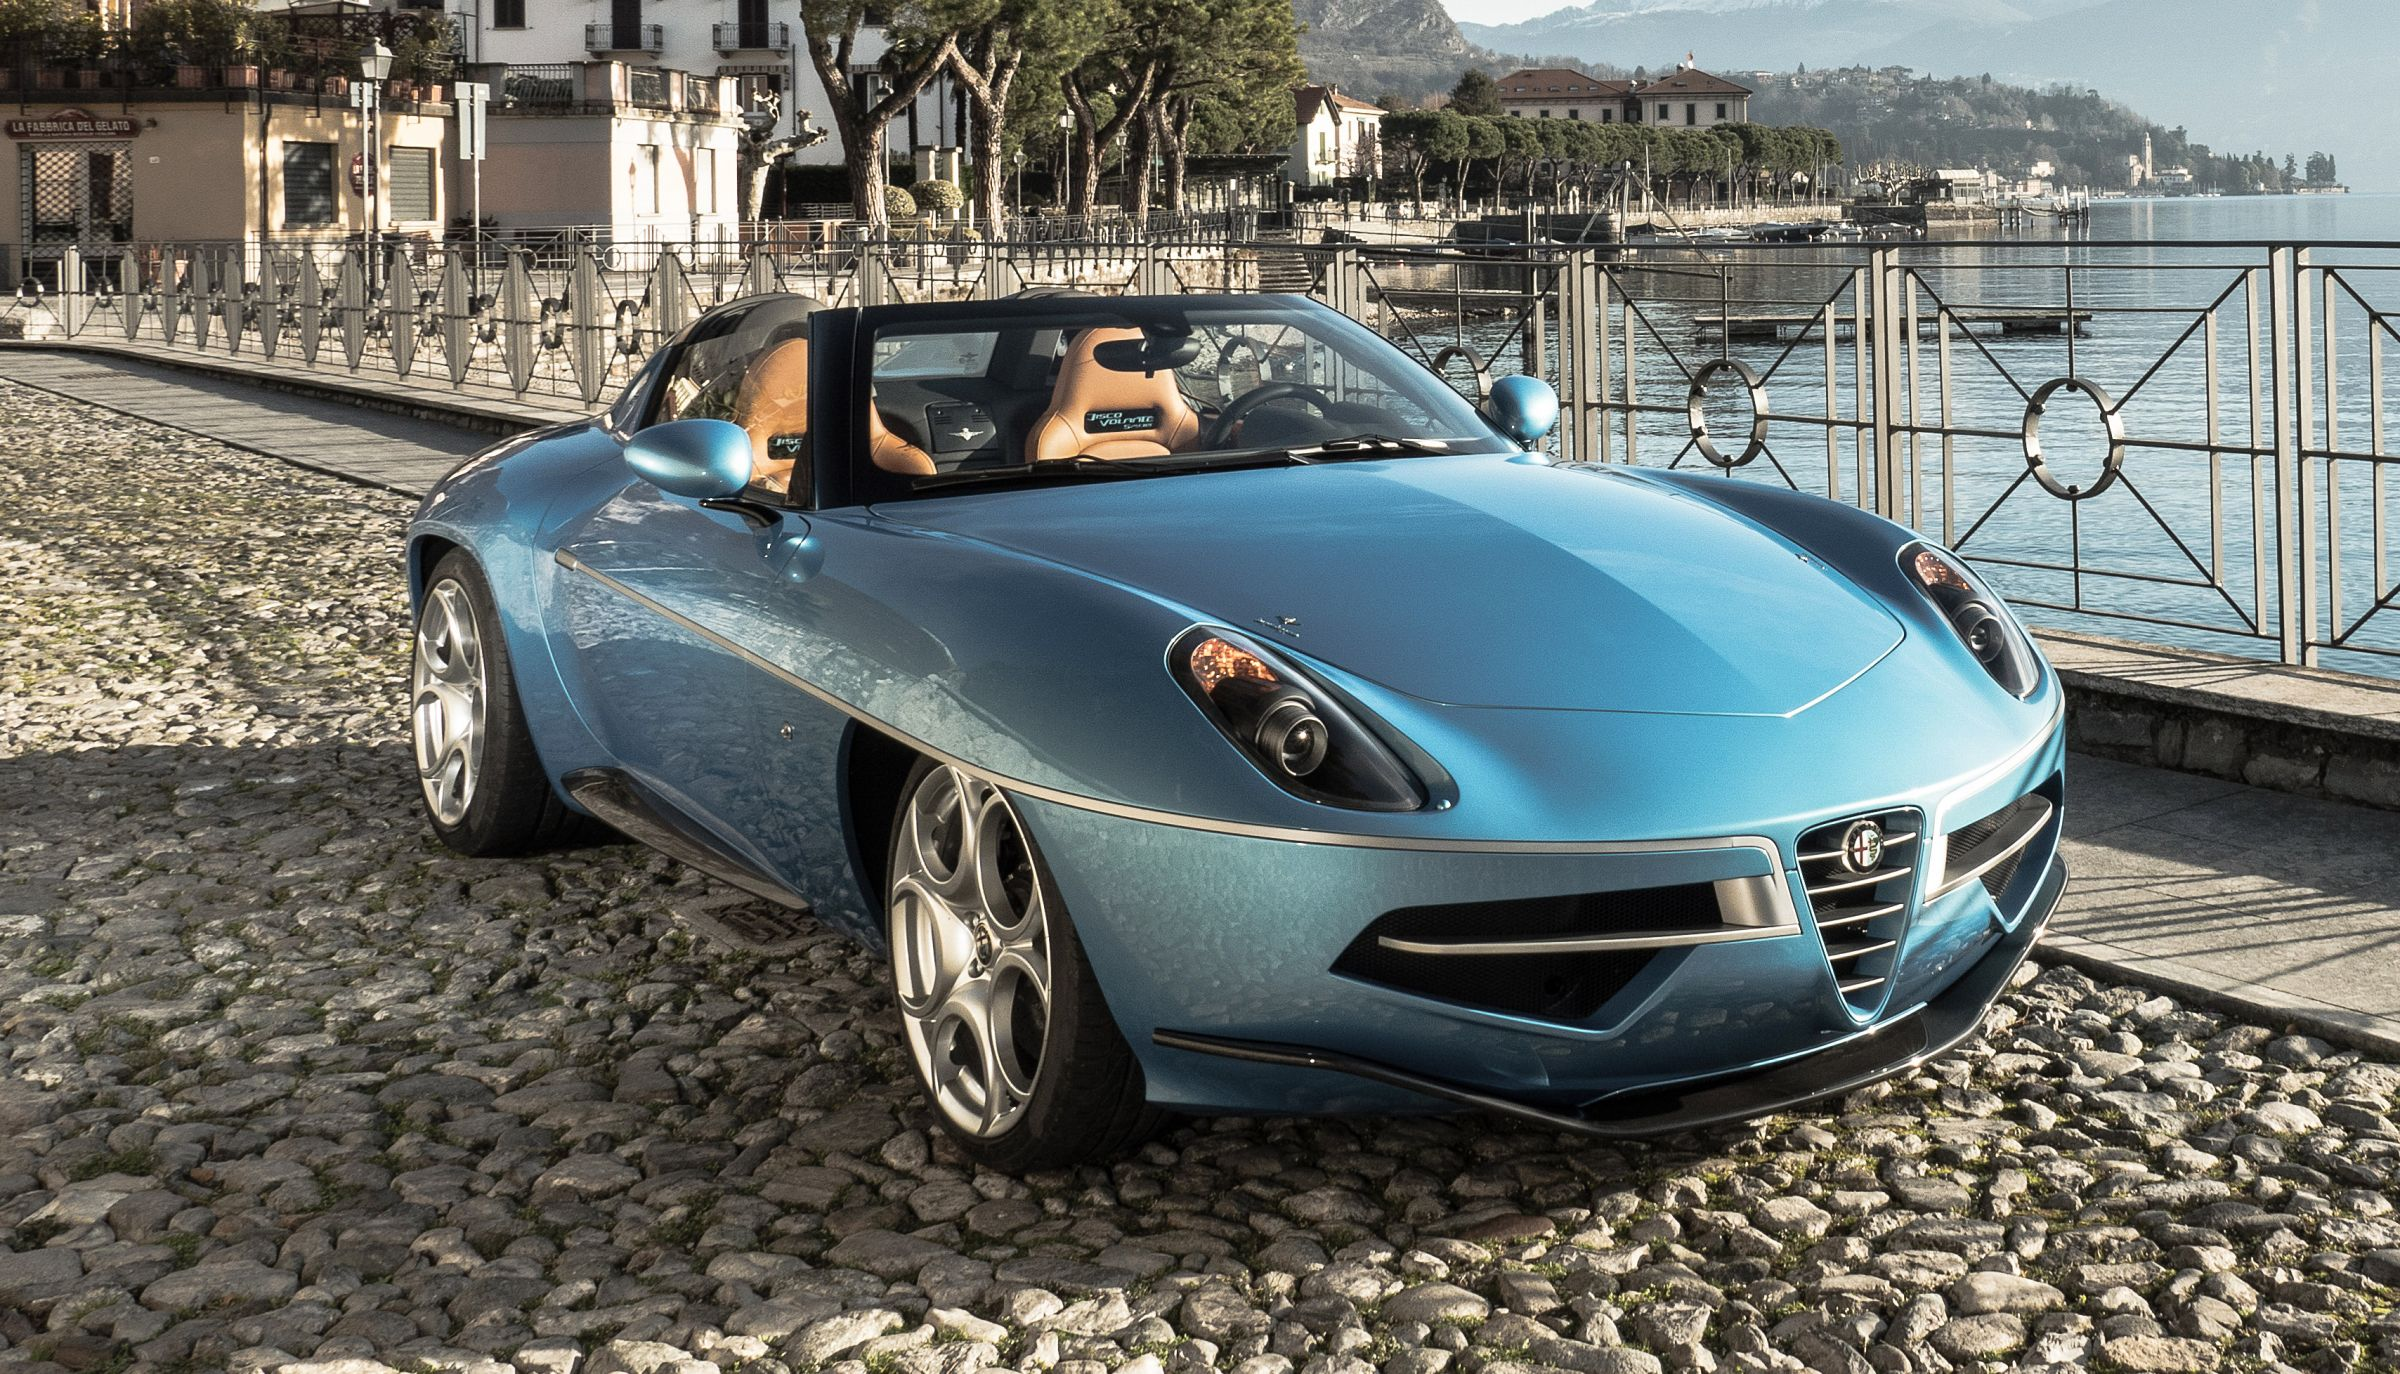 Disco Volante Spyder is somewhat of a bargain for what must be the closest thing to visual perfection in the automotive world